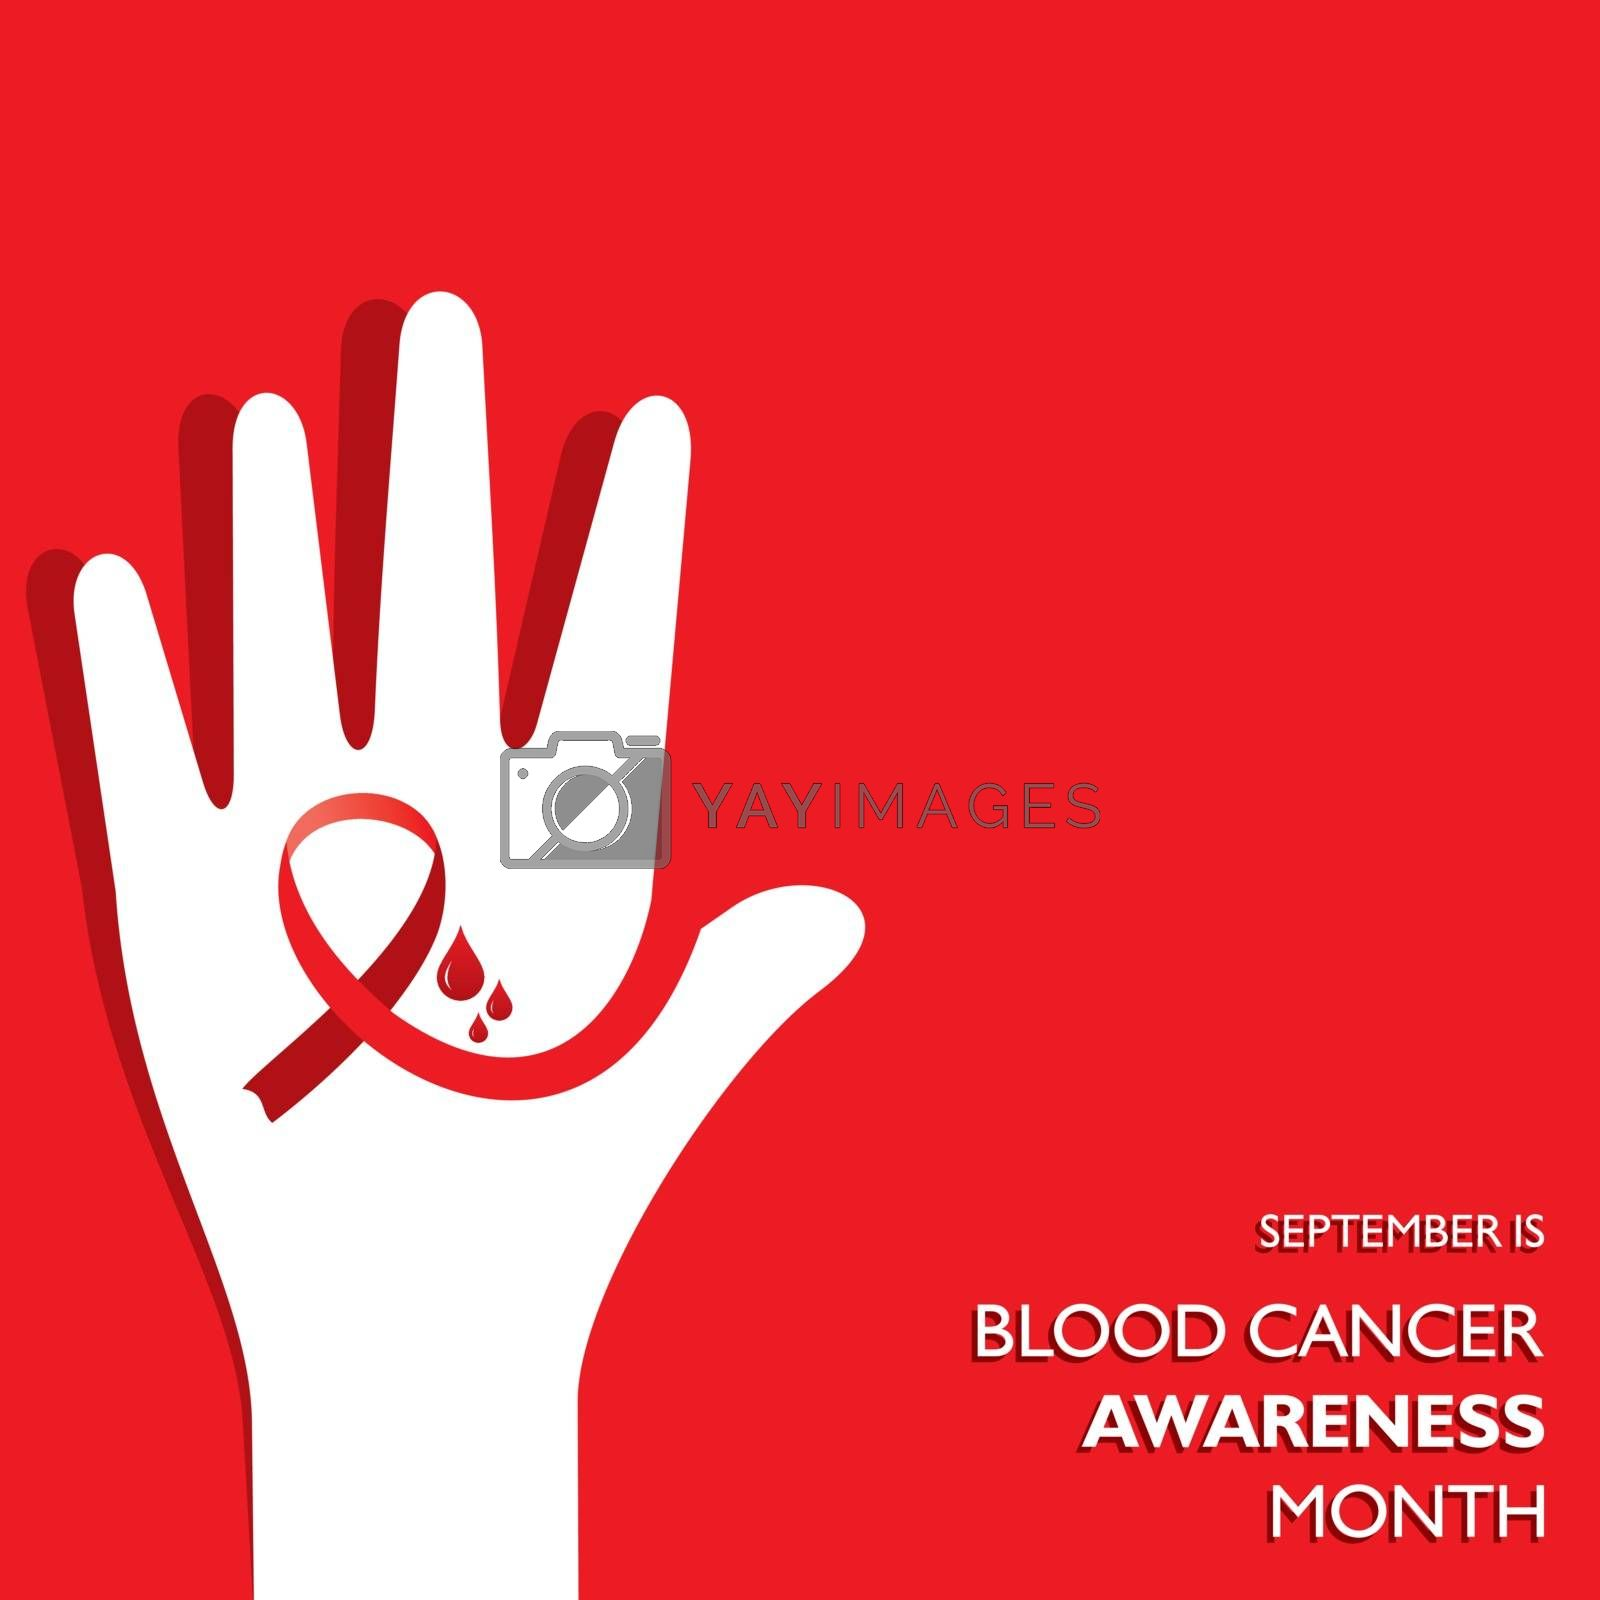 Royalty free image of Blood Cancer Awareness Month observed in September. by graphicsdunia4you